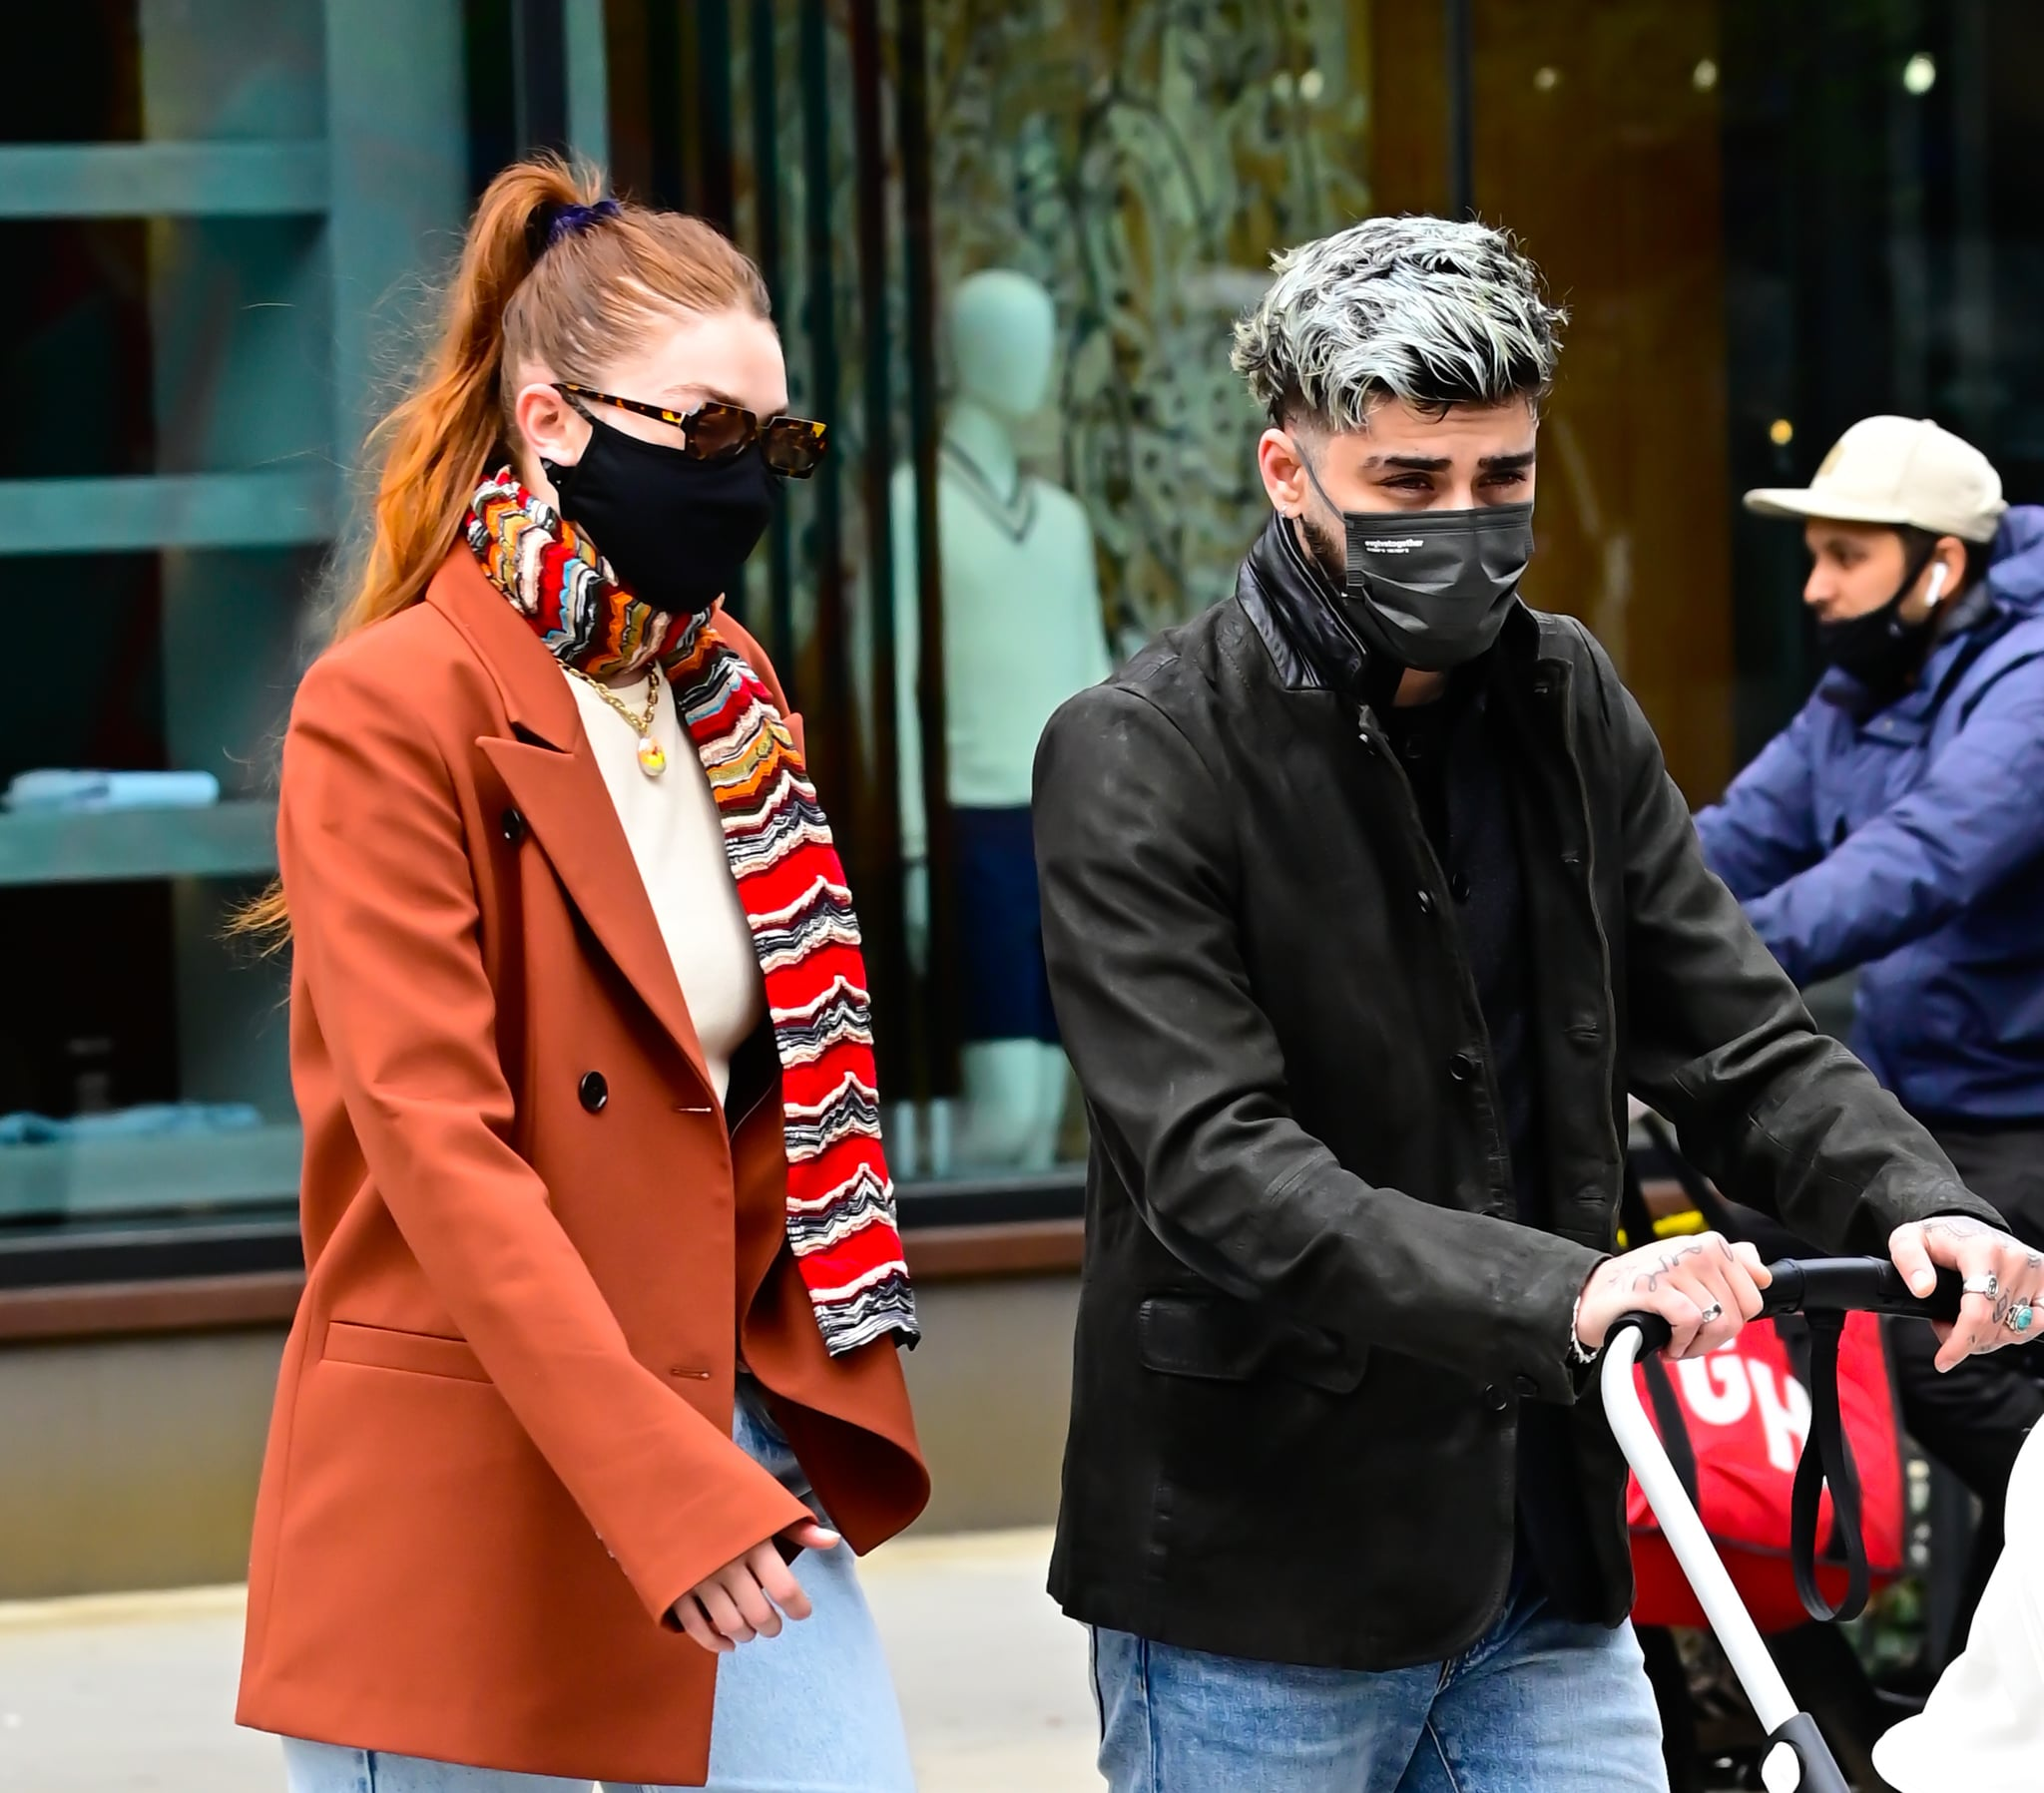 NEW YORK, NY - MARCH 25:  Gigi Hadid and  Zayn Malik are seen walking in SoHo on March 25, 2021 in New York City.  (Photo by Raymond Hall/GC Images)